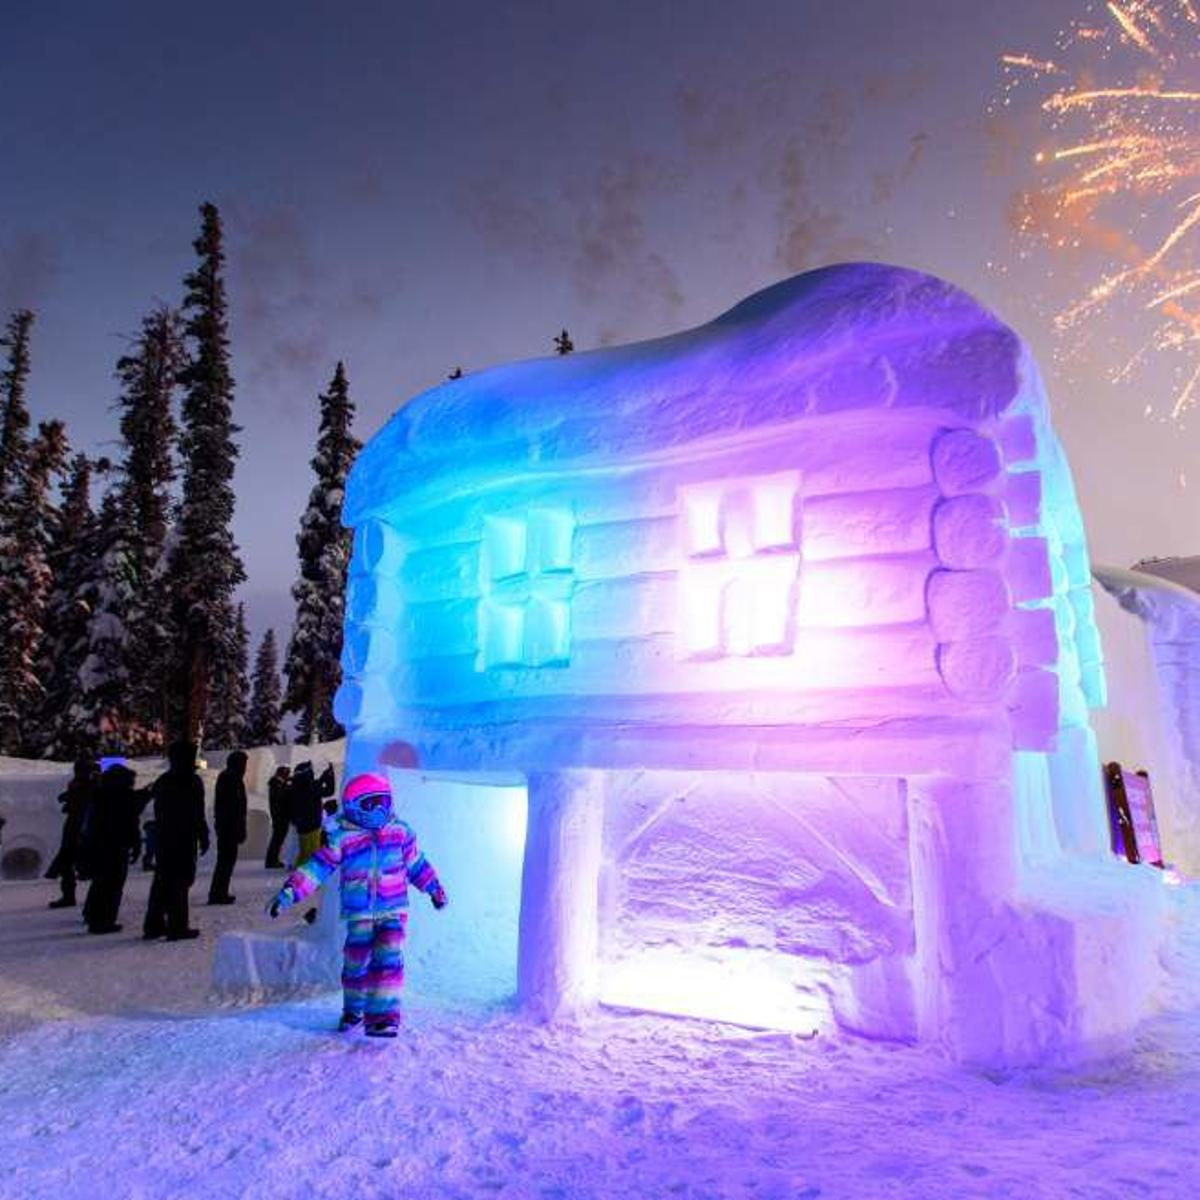 World's Largest Snow Fort Bringing Fun to Colorado Ski Resort | OutThere  Colorado